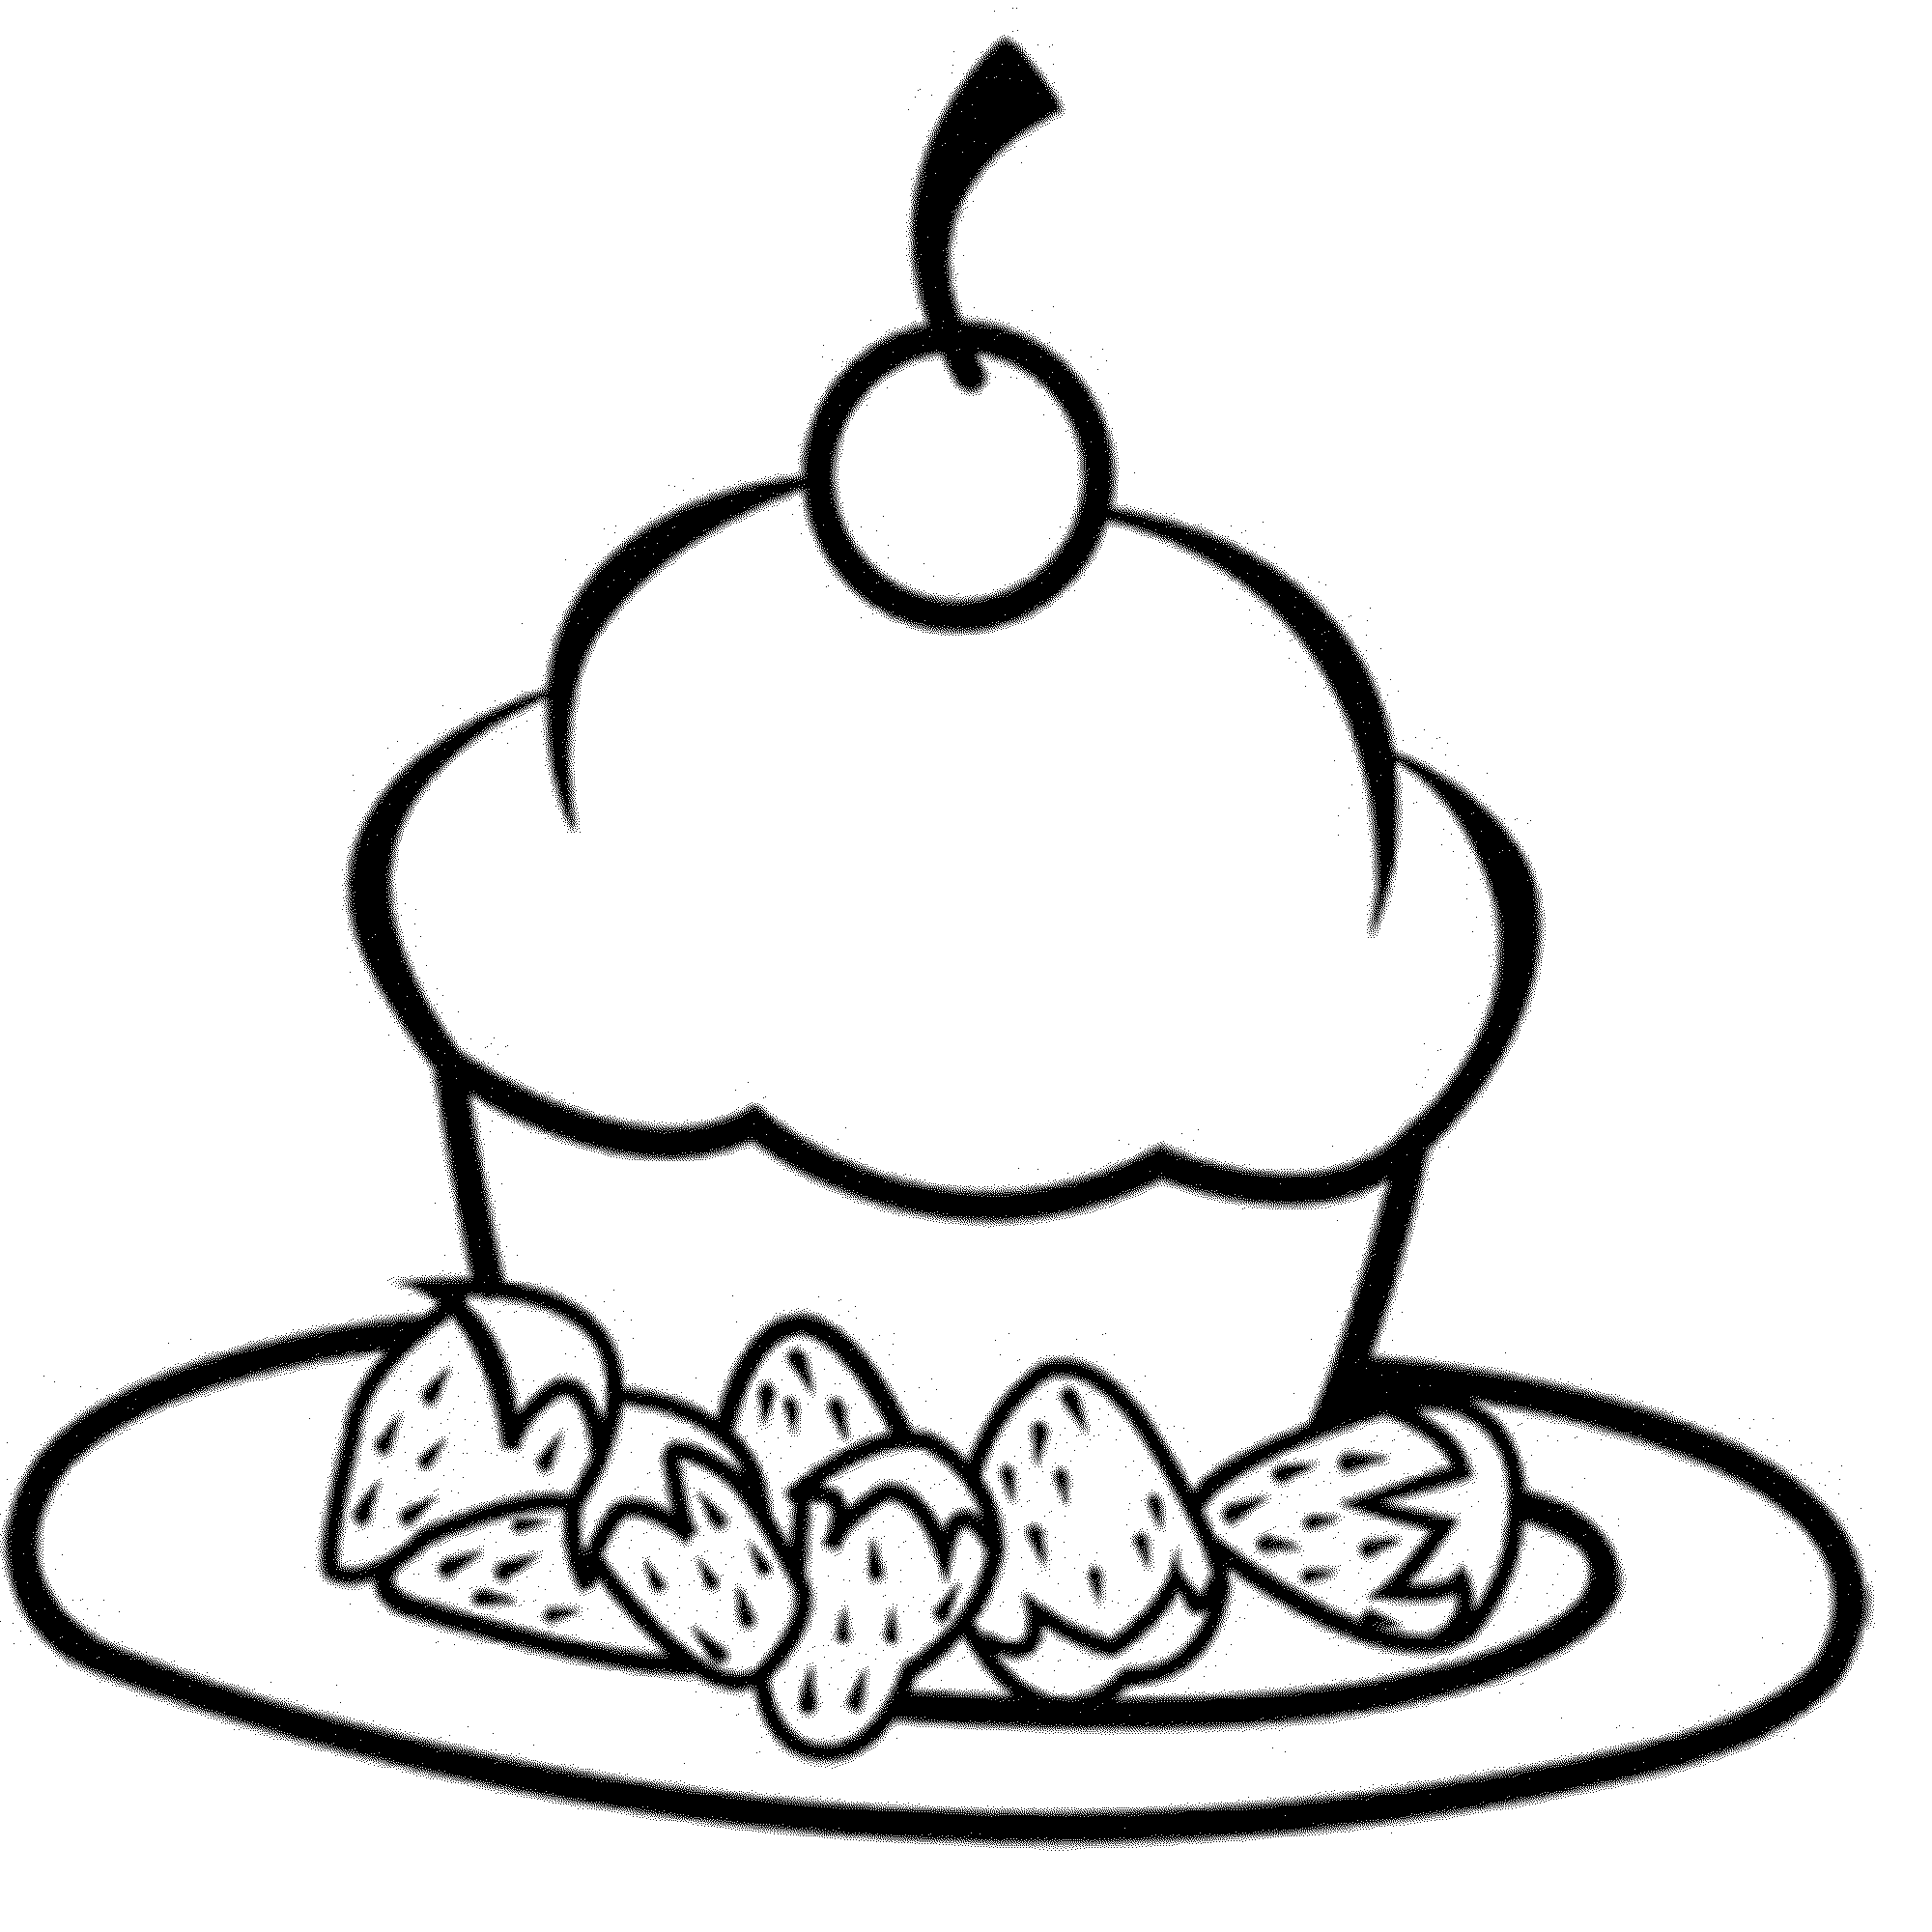 cupcake colouring template image result for cute cupcakes clipart cupcake coloring cupcake template colouring